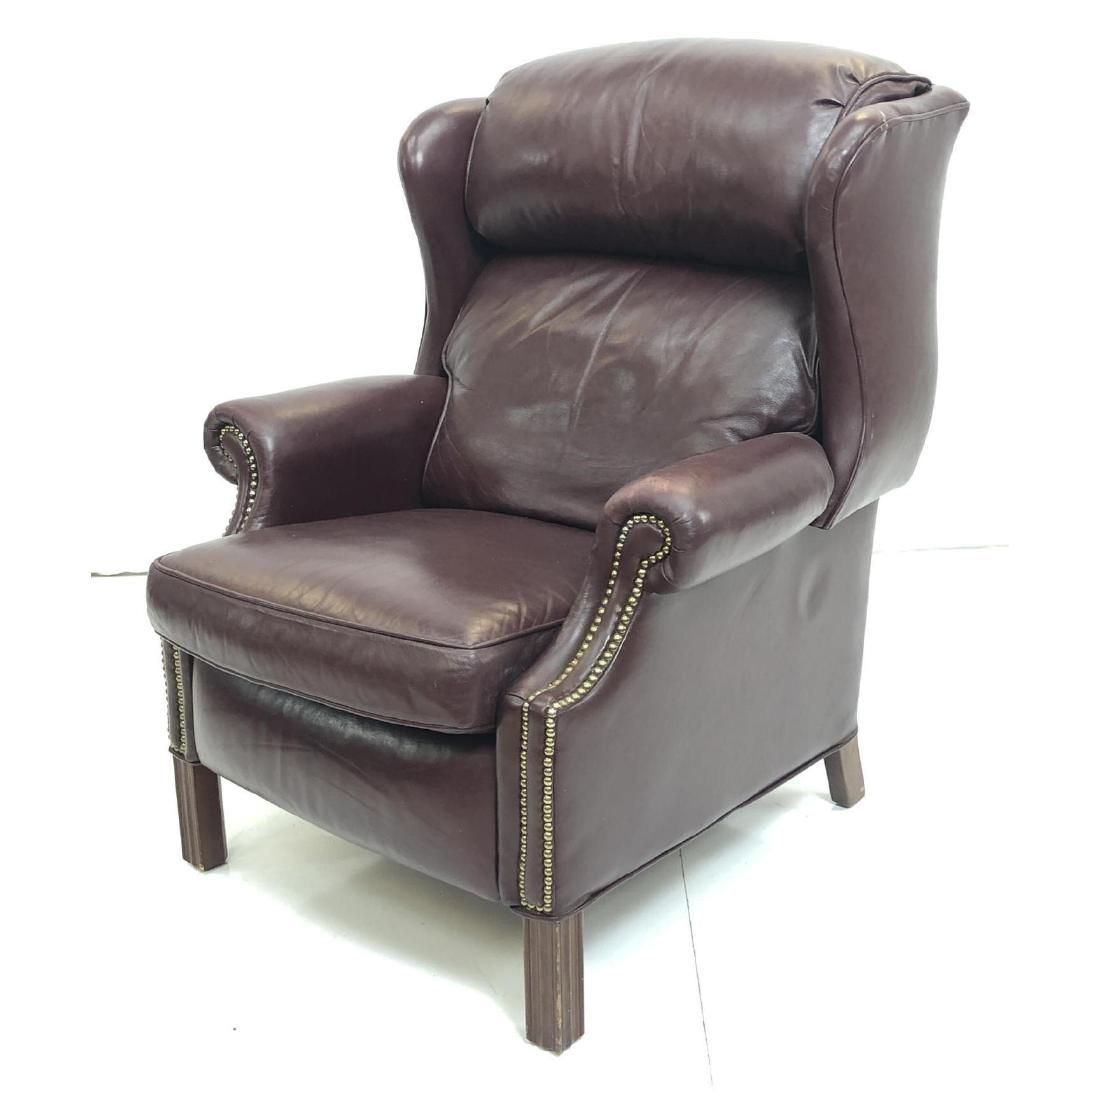 BRADINGTON YOUNG Wine Leather Wing Chair Recliner